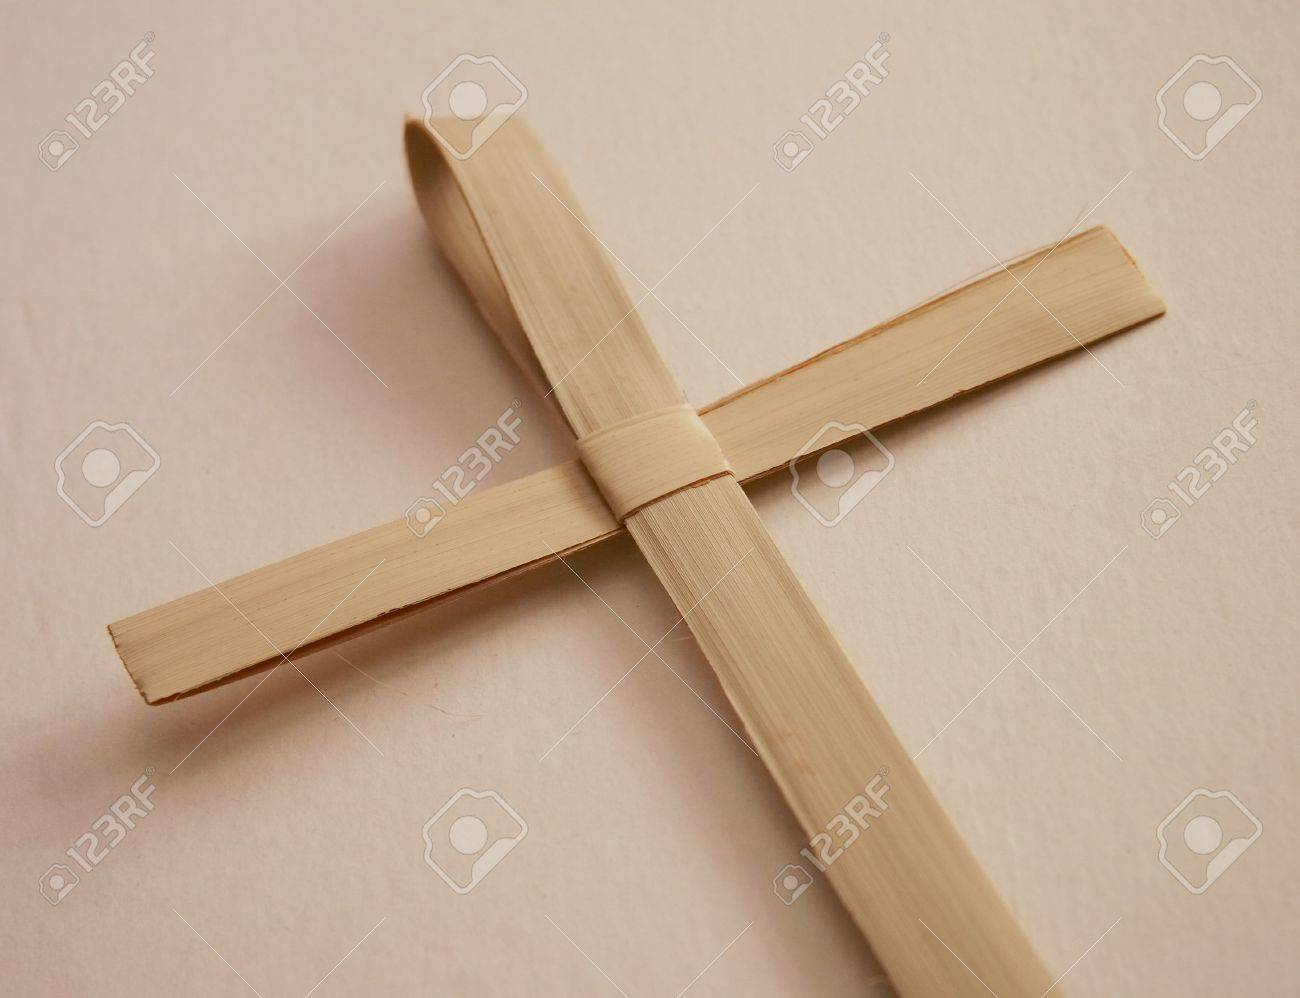 Reed Cross Made For Palm Sunday Mass Stock Photo, Picture And ...